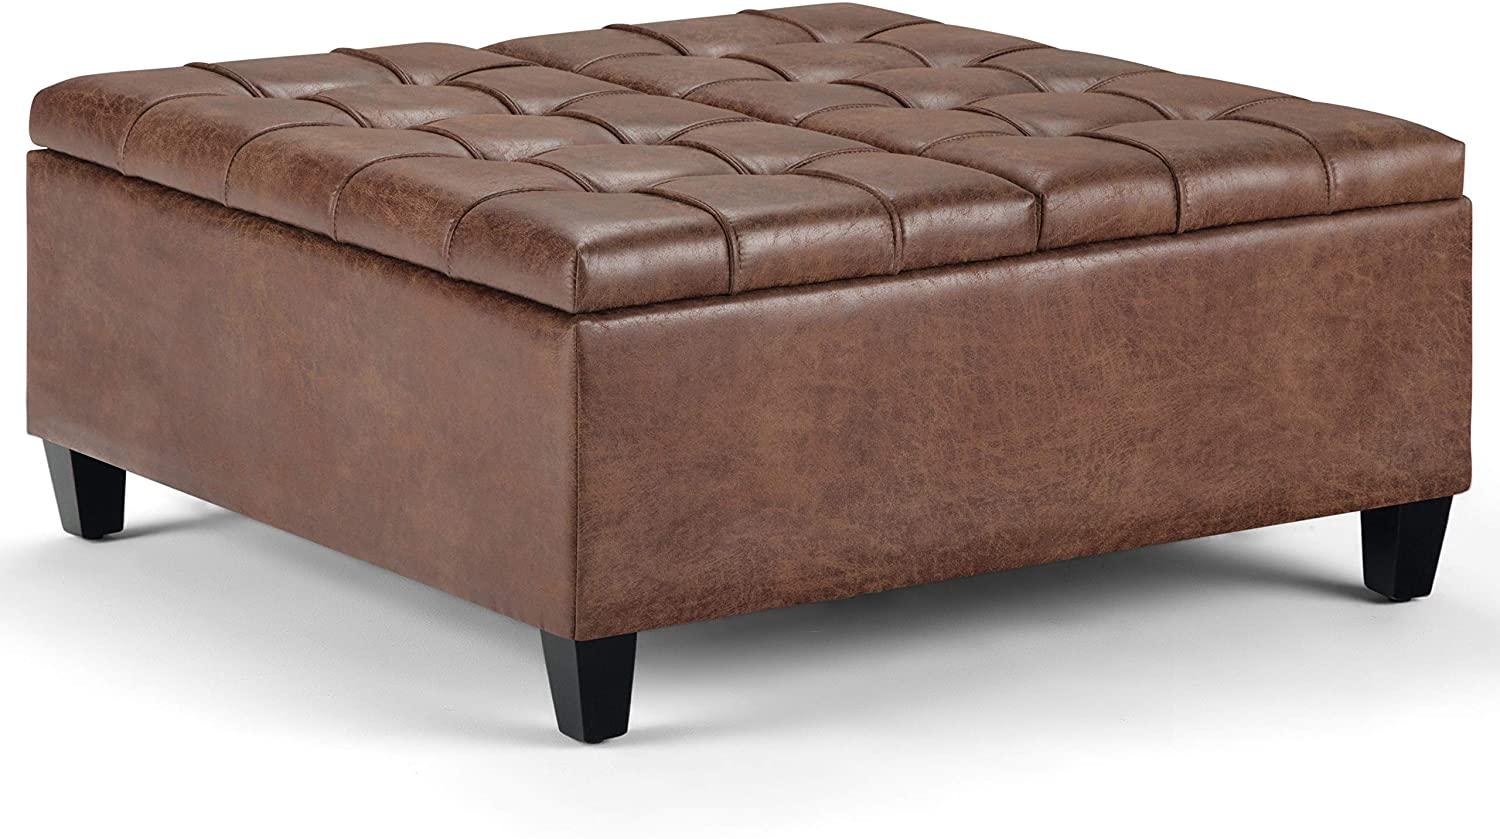 Simpli Home AXCOT-265-DUB Harrison 36 inch Wide Traditional Square Storage Ottoman in Distressed Umber Brown Faux Air Leather